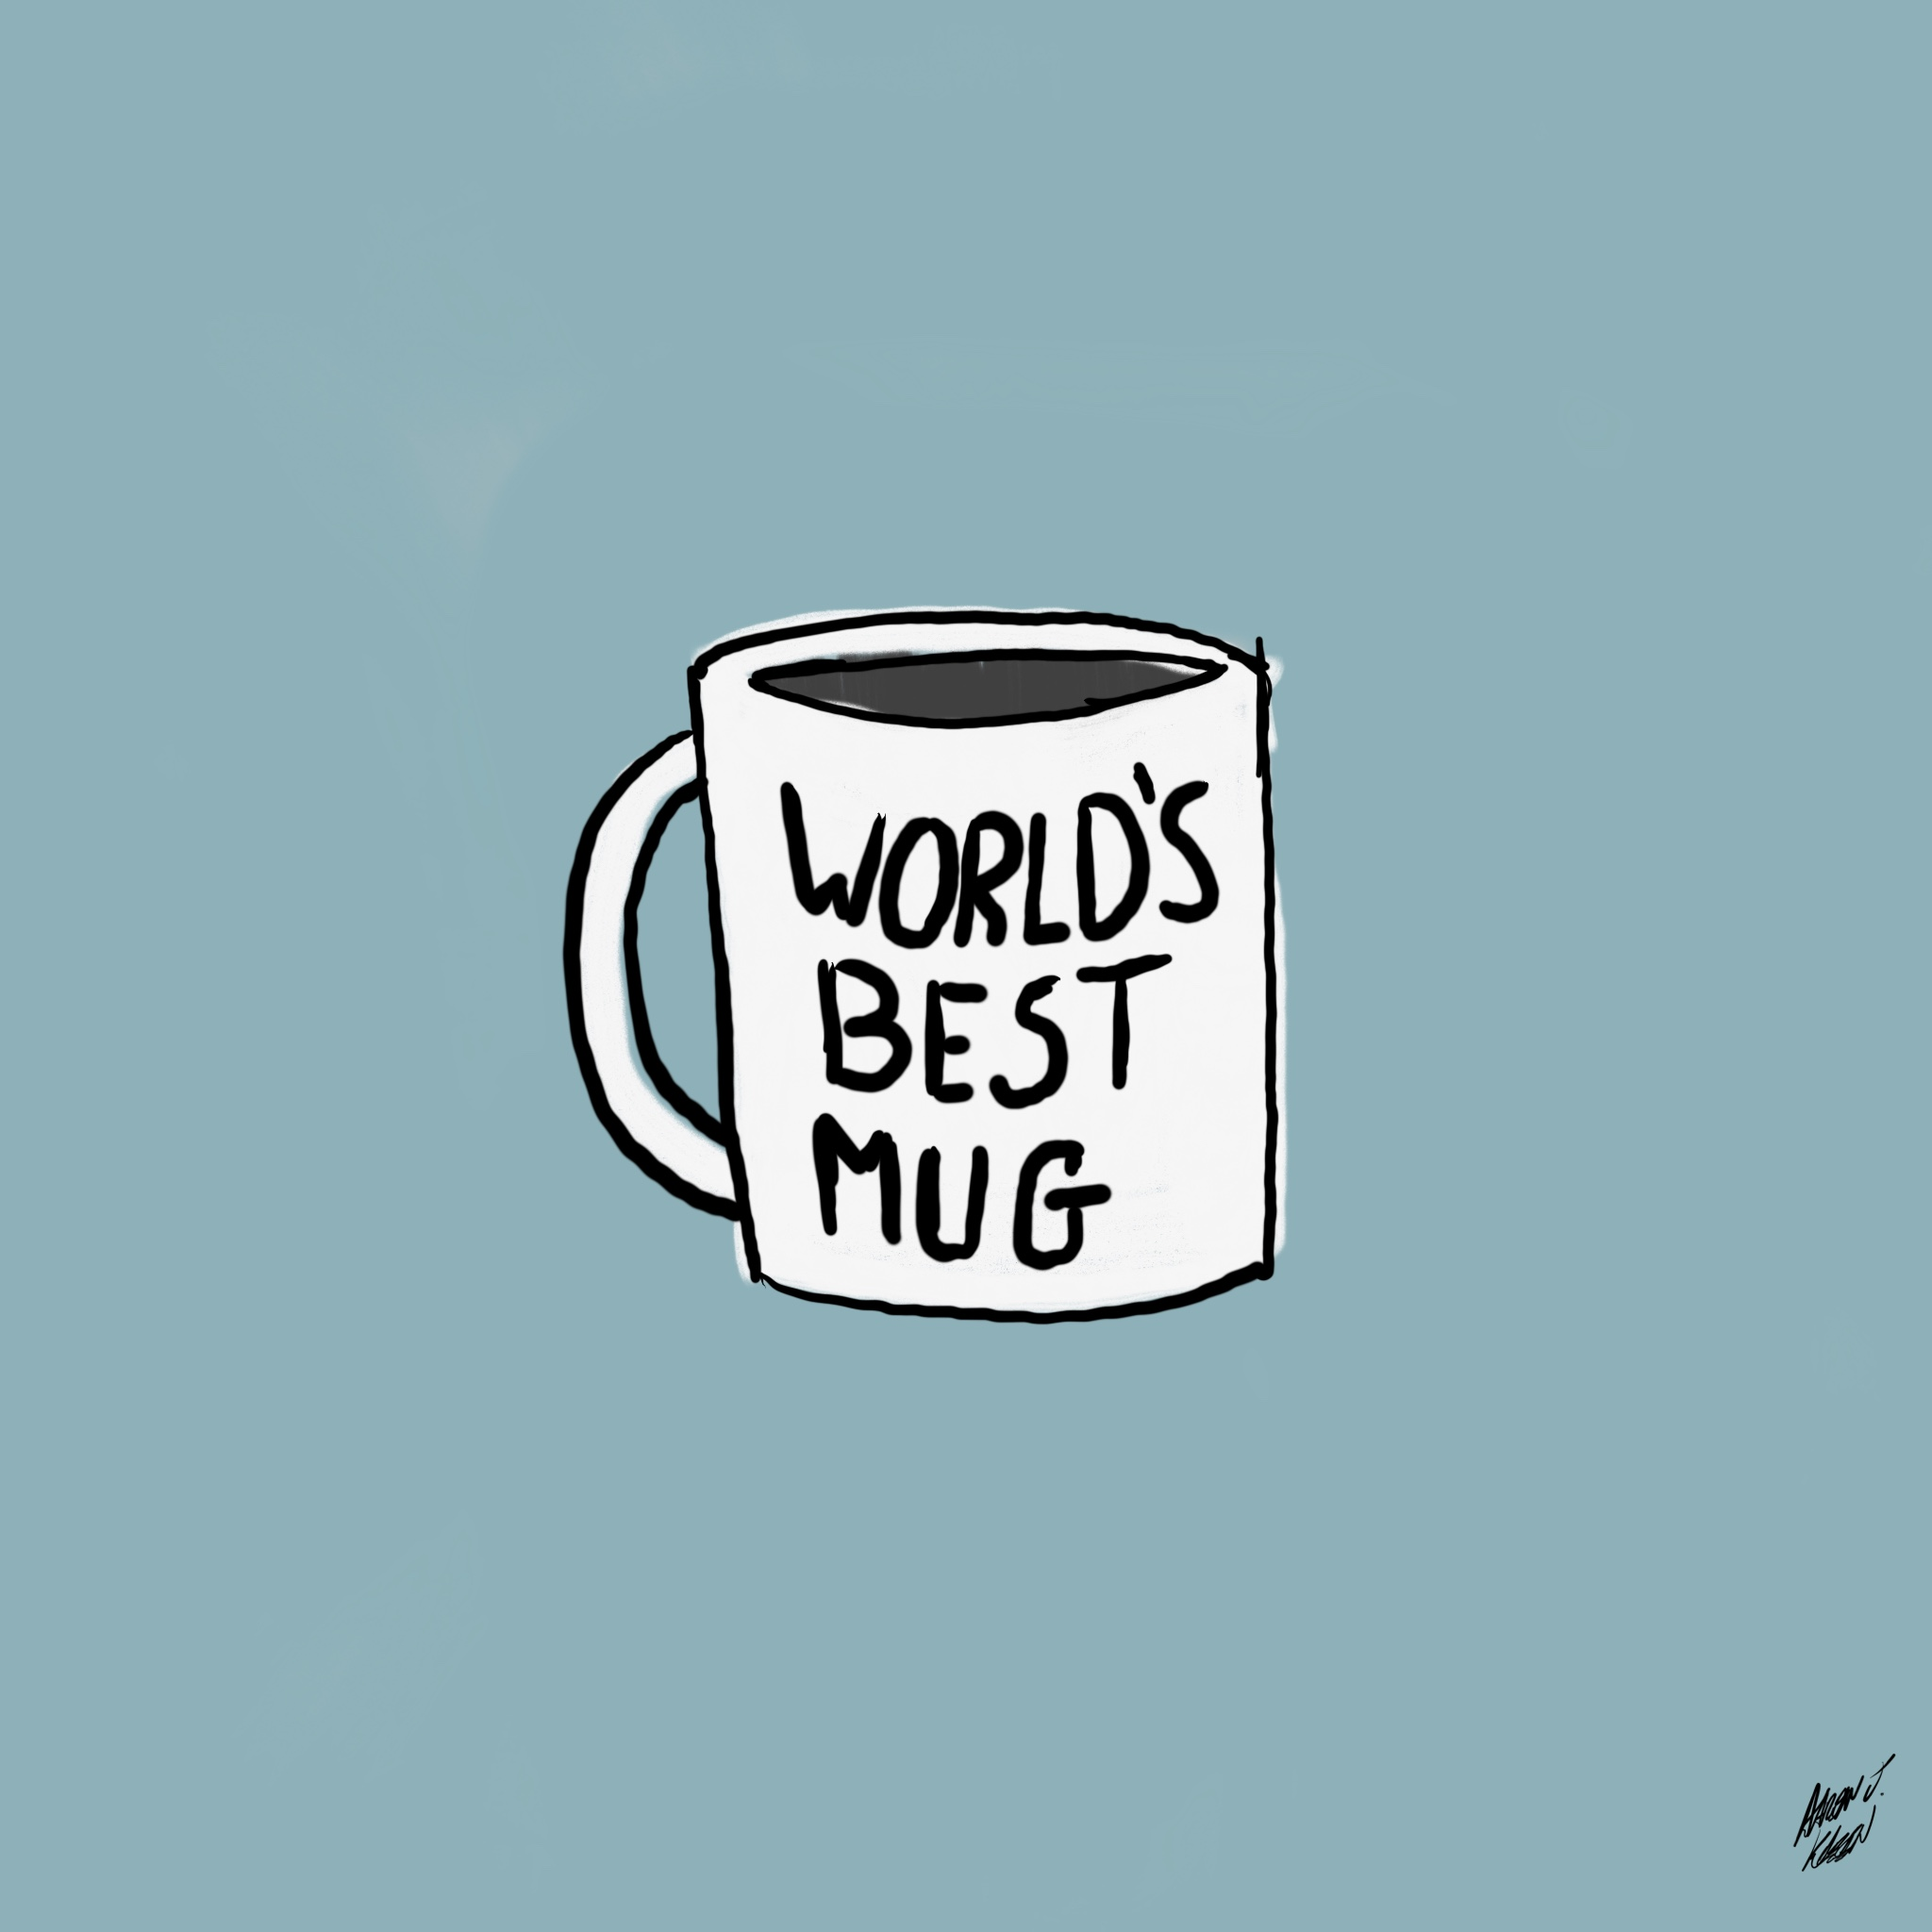 World's_Best_Mug.jpg